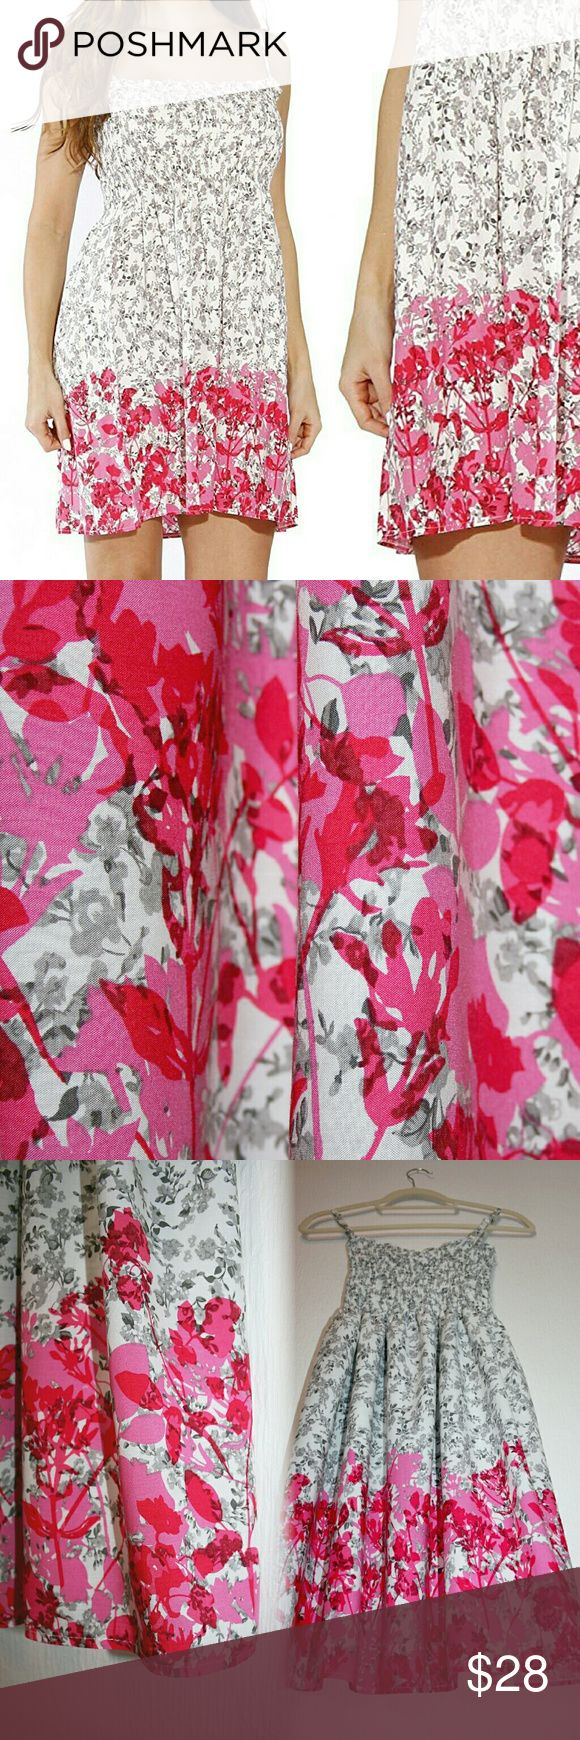 MJ,LJ Pink/White/Gray Floral Smocked Sundress NWT This comfortable, lightweight floral mini dress is cute & flirty! The bottom third of the dress features the silhouette of bright pink & magenta flowers that overlay an smaller, more detailed, allover gray & white floral pattern. It features adjustable spaghetti straps and an elastic smocked/sheared panel fitted to the bust. The soft fabric is 100% rayon challis (not see-through, but very lightweight). I'm happy to provide measurements upon…